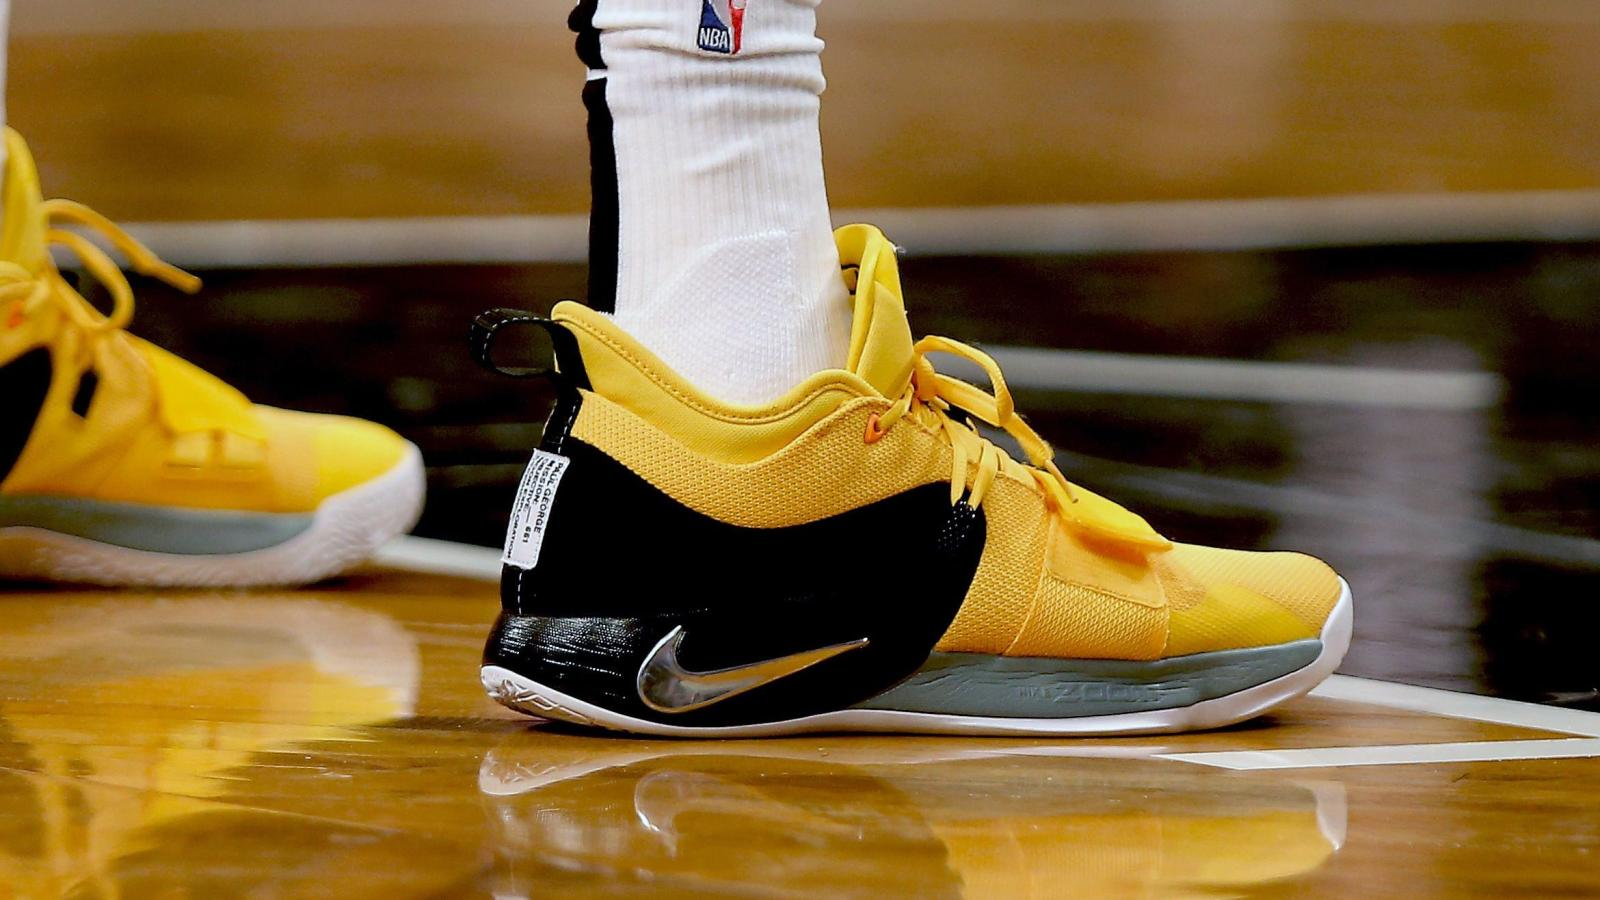 fcfb515e565d9 Basketball sneakers have gone out of fashion — Quartzy